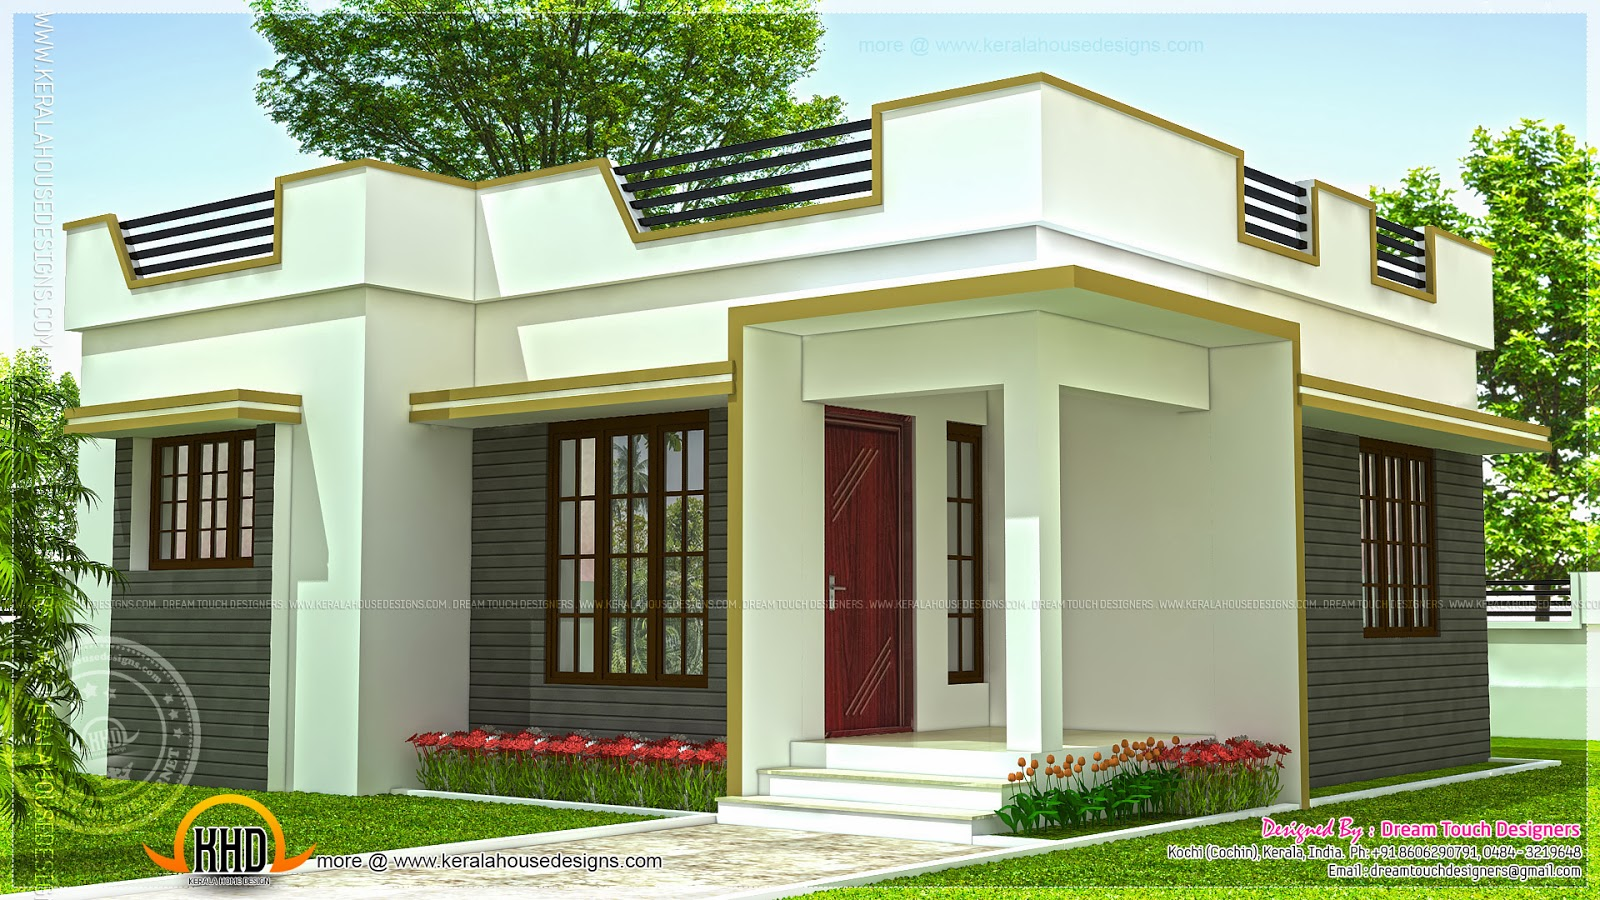 35 small and simple but beautiful house with roof deck for Small house design with roof deck